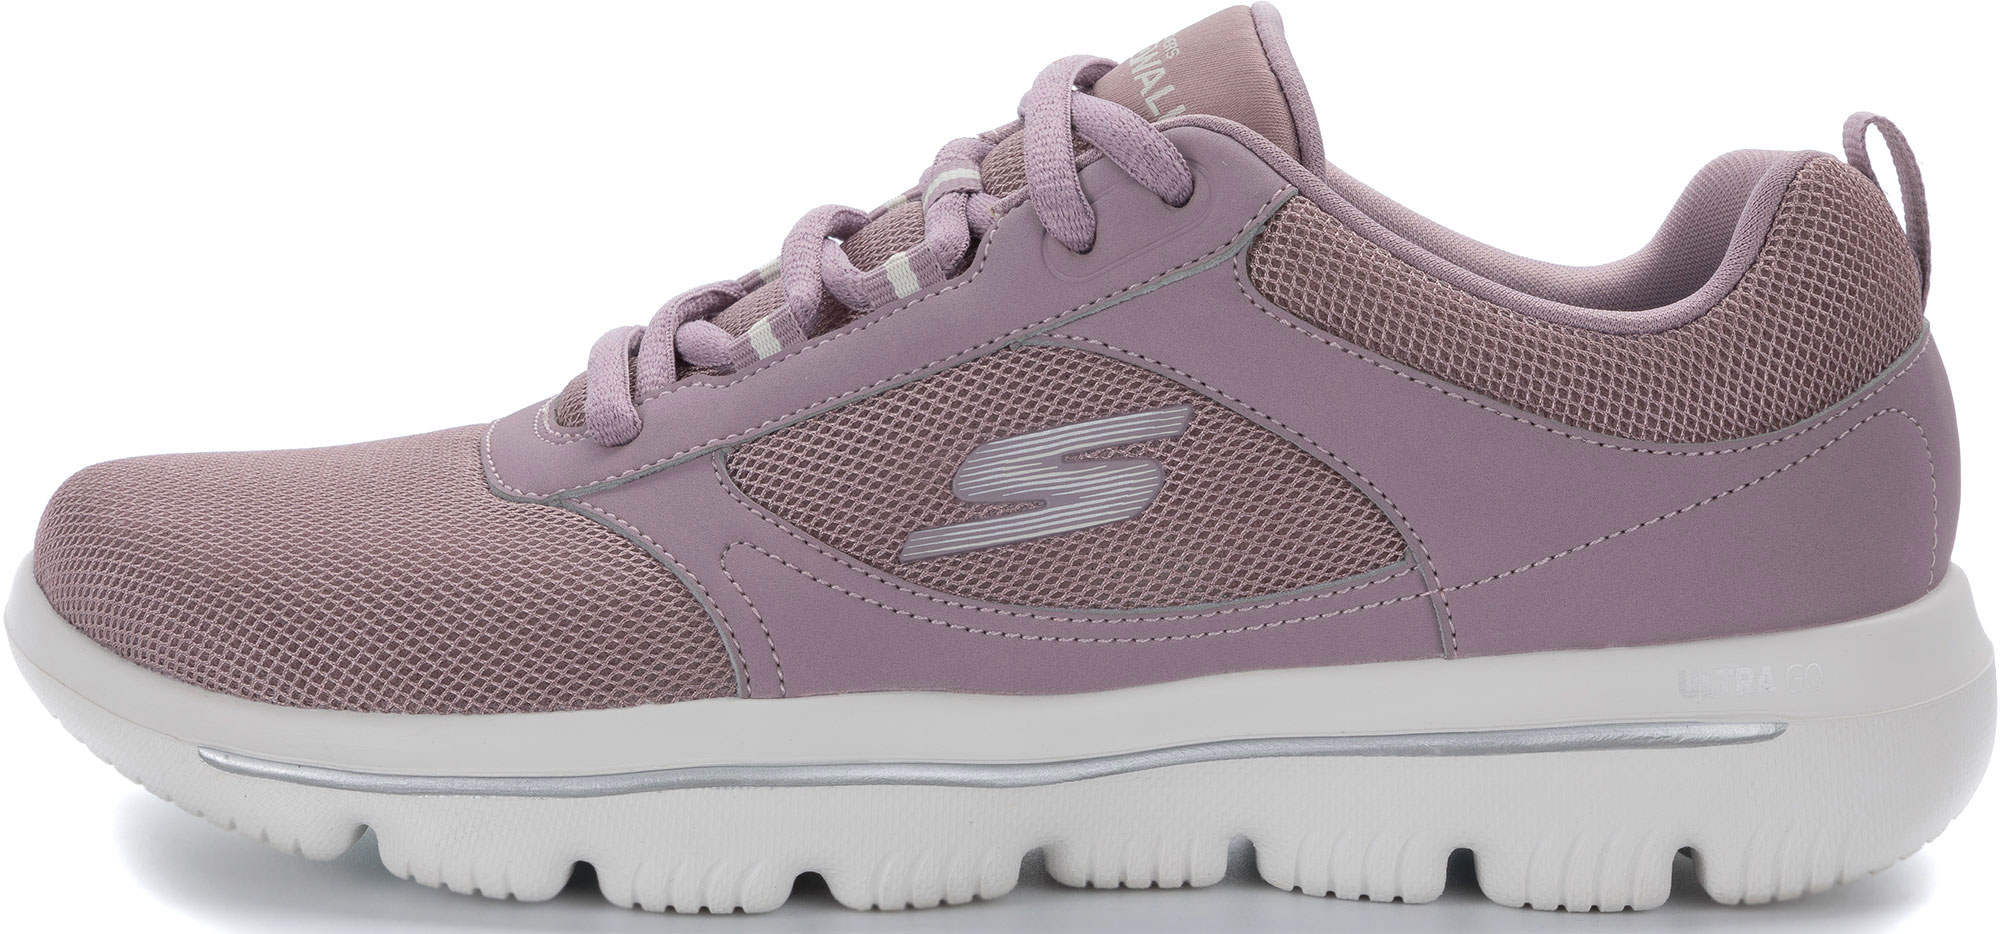 Skechers Кроссовки женские Skechers Go Walk Evolution Ultra-Enhan, размер 42